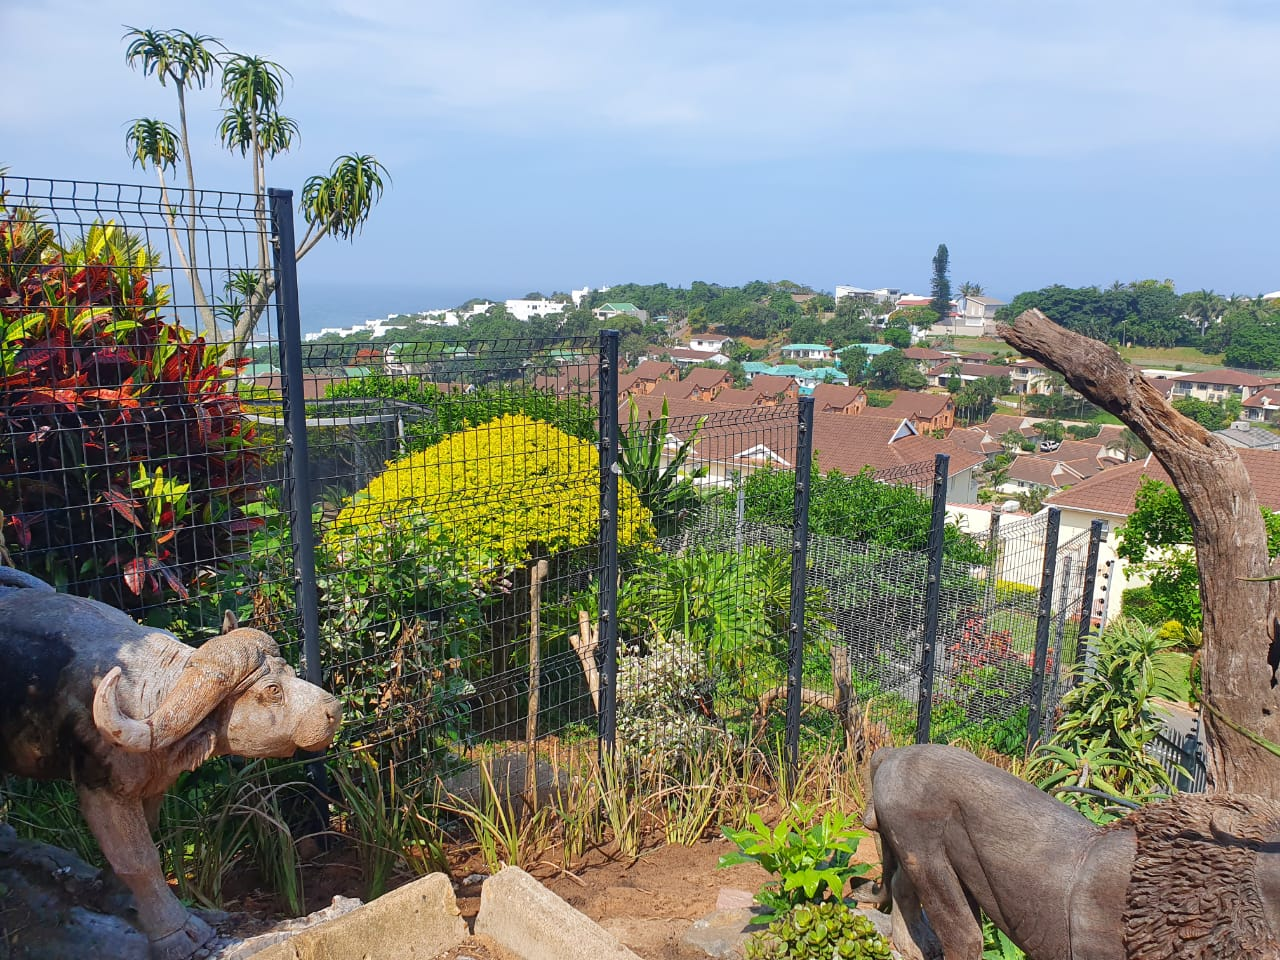 betafence, nylofor, MED, claer View, fencing, ballito, gate, contractors, best, local